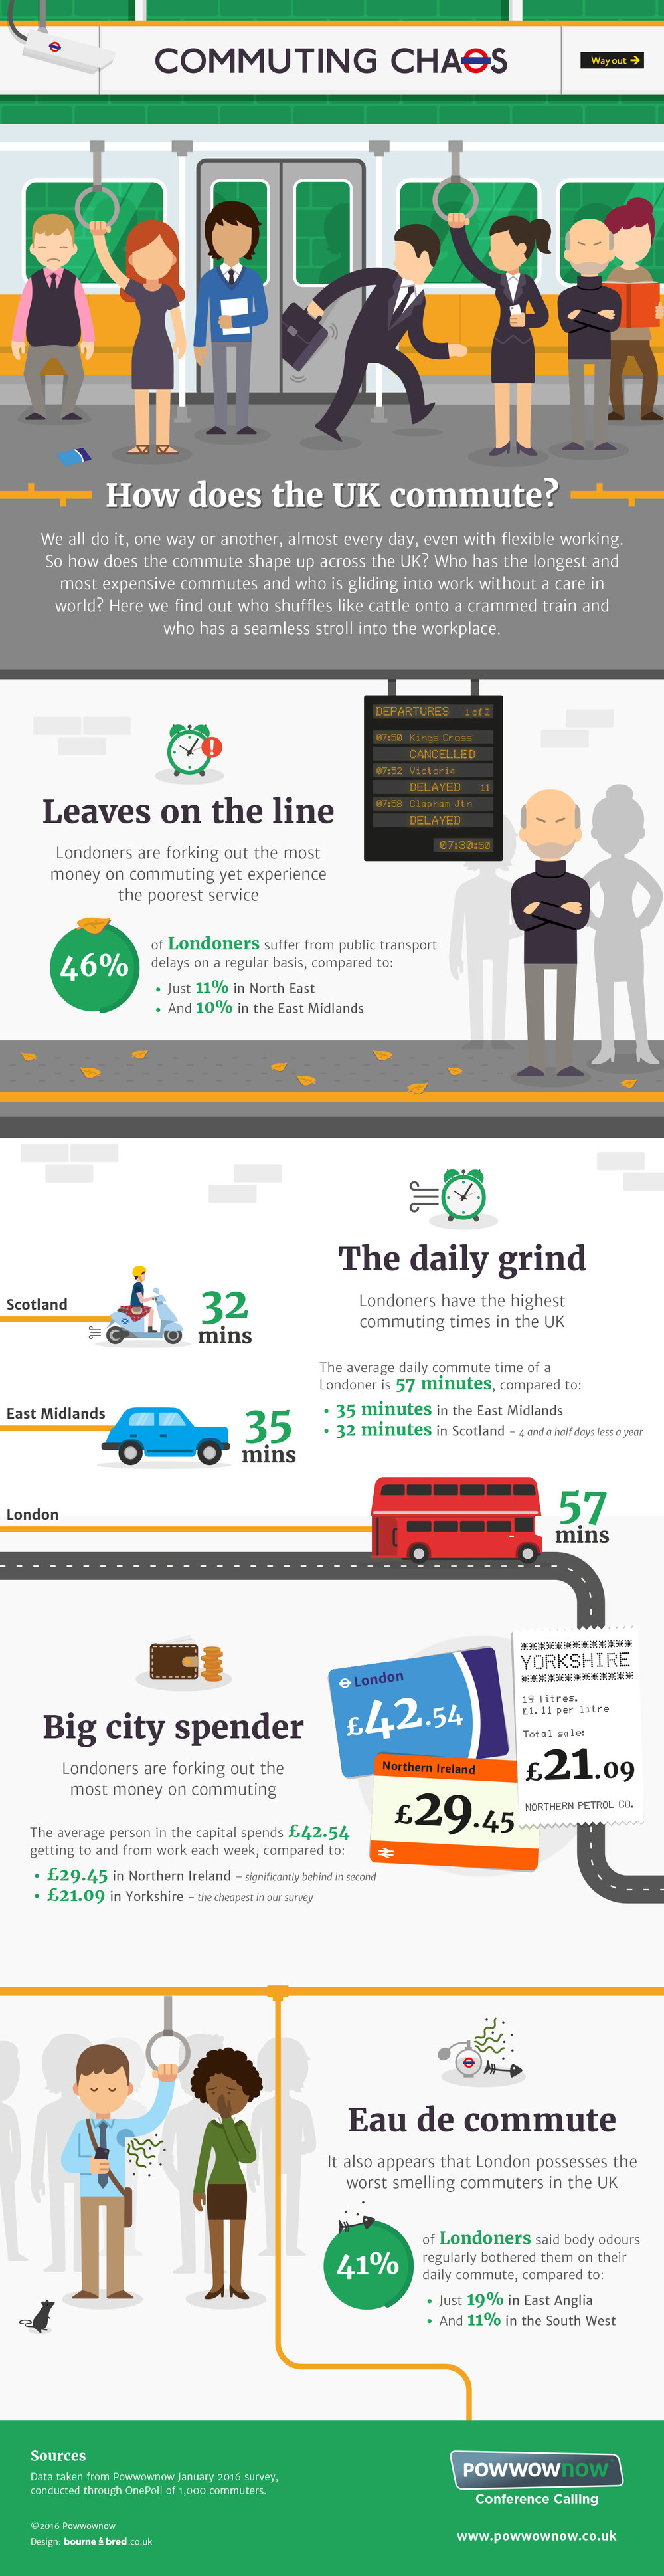 Powwownow_commuting_infographic